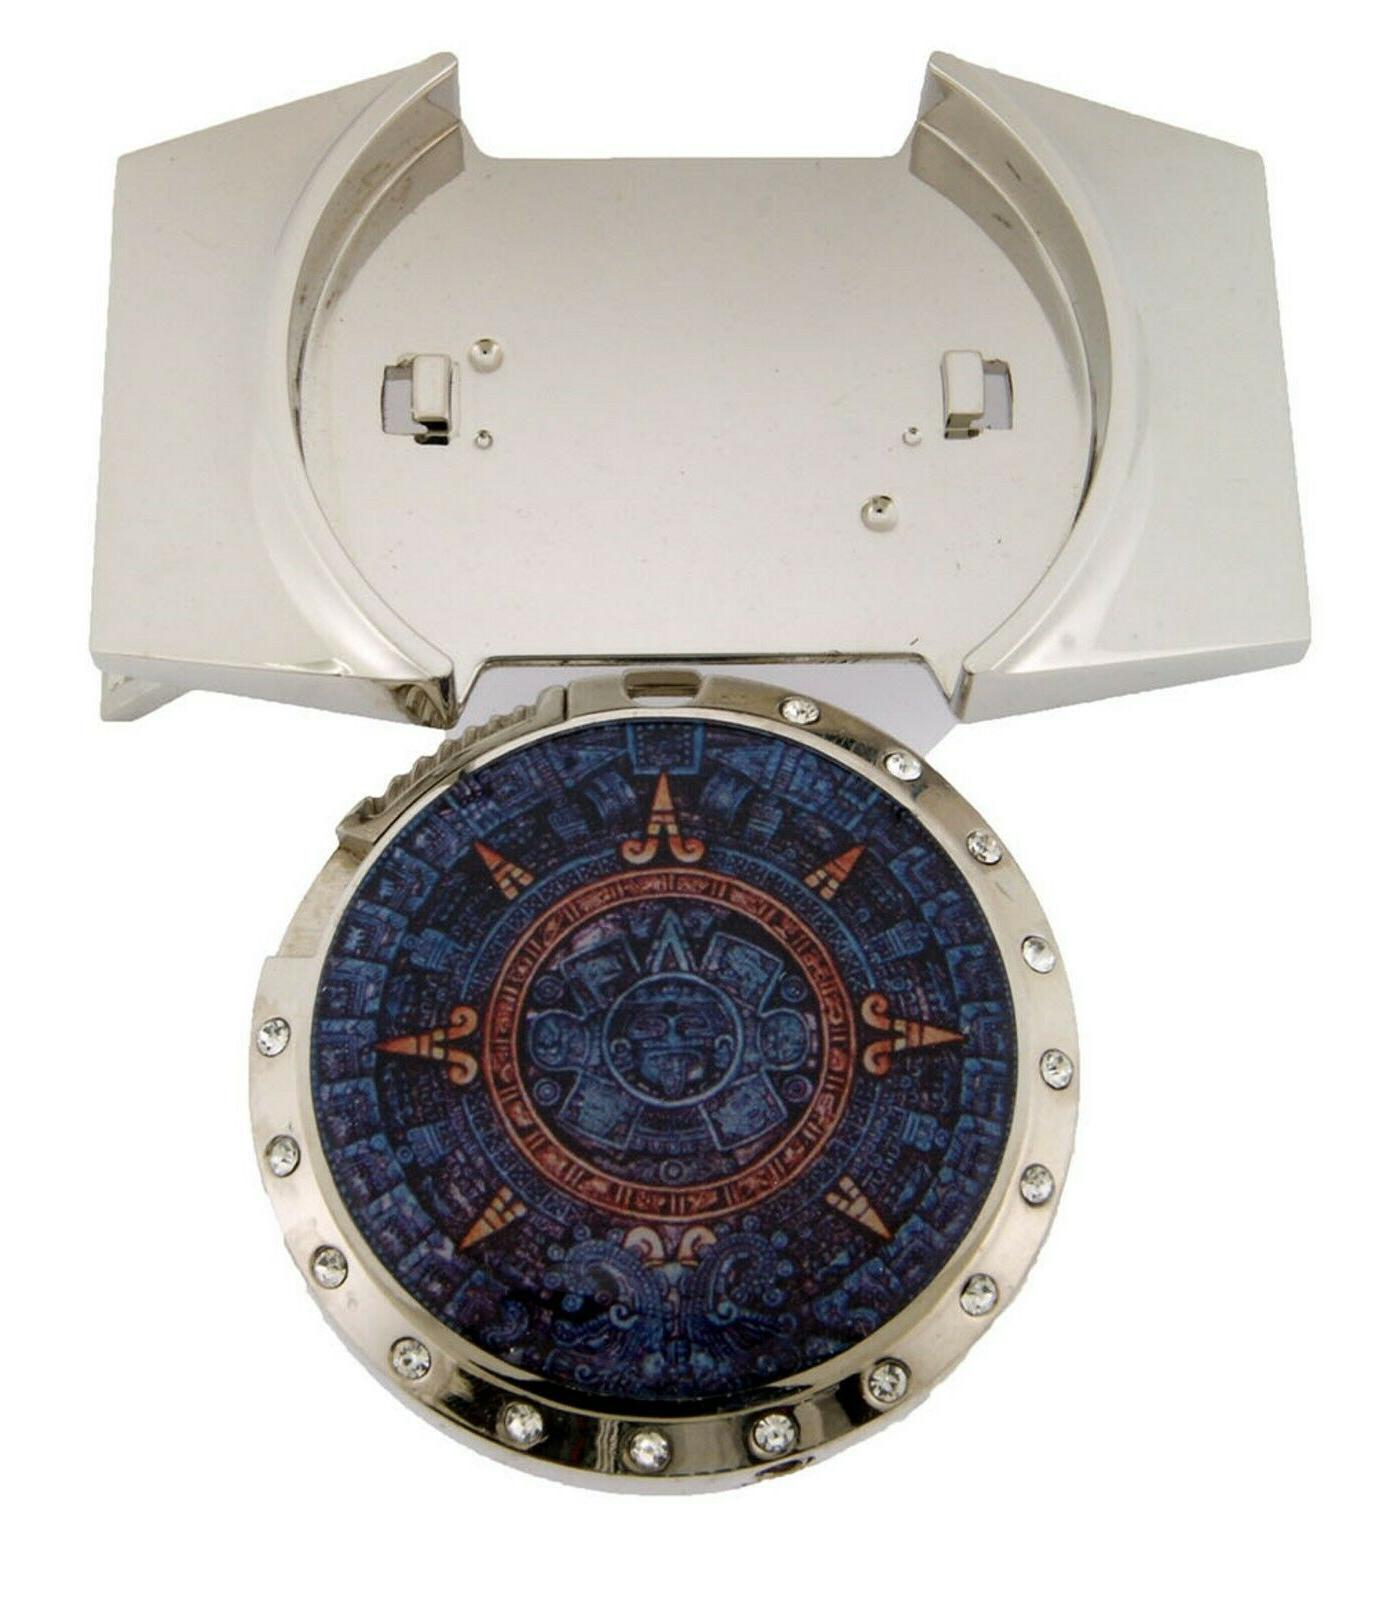 Aztec Calendar Removable Belt Buckle Mayan